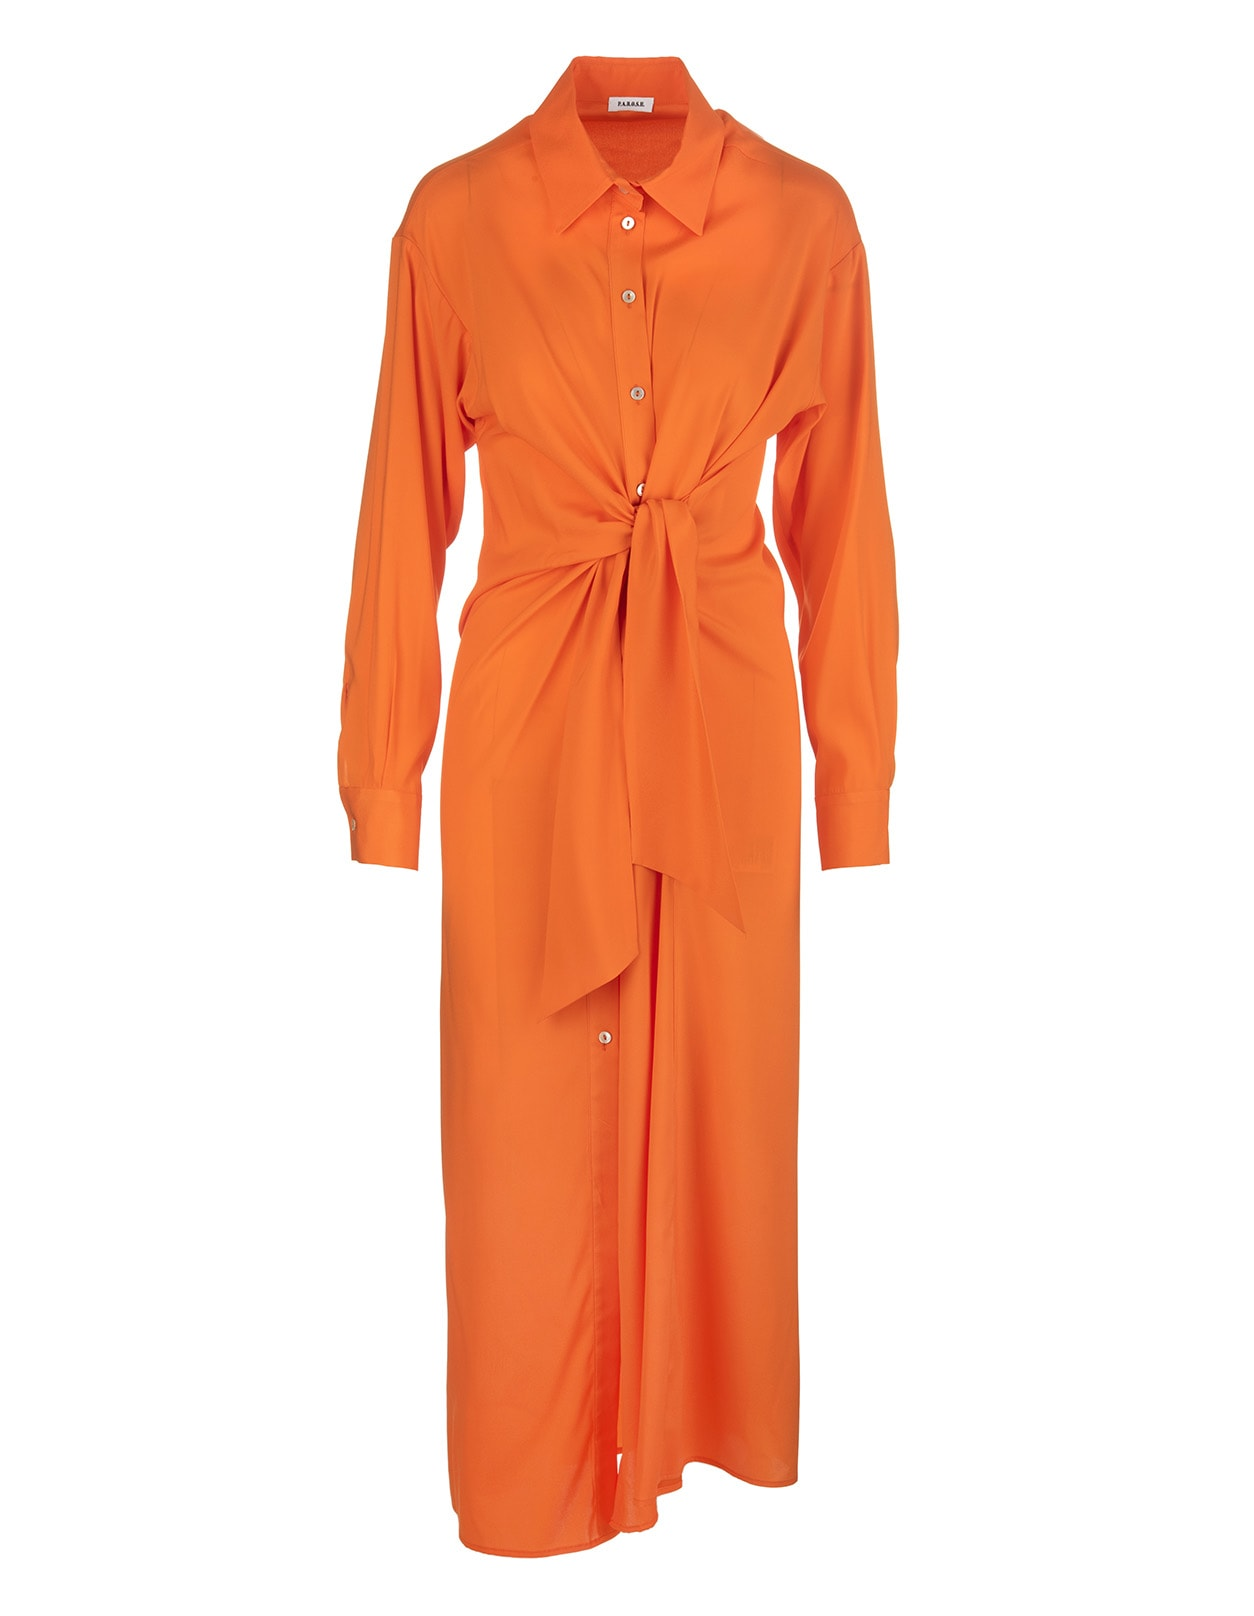 Chemisier long dress by A.R.O.H. in orange silk blend with classic collar, front buttoning, long sleeves, cuffs with button, belt with front knot and soft fit. Composition: 93% Silk, 7% Elastane